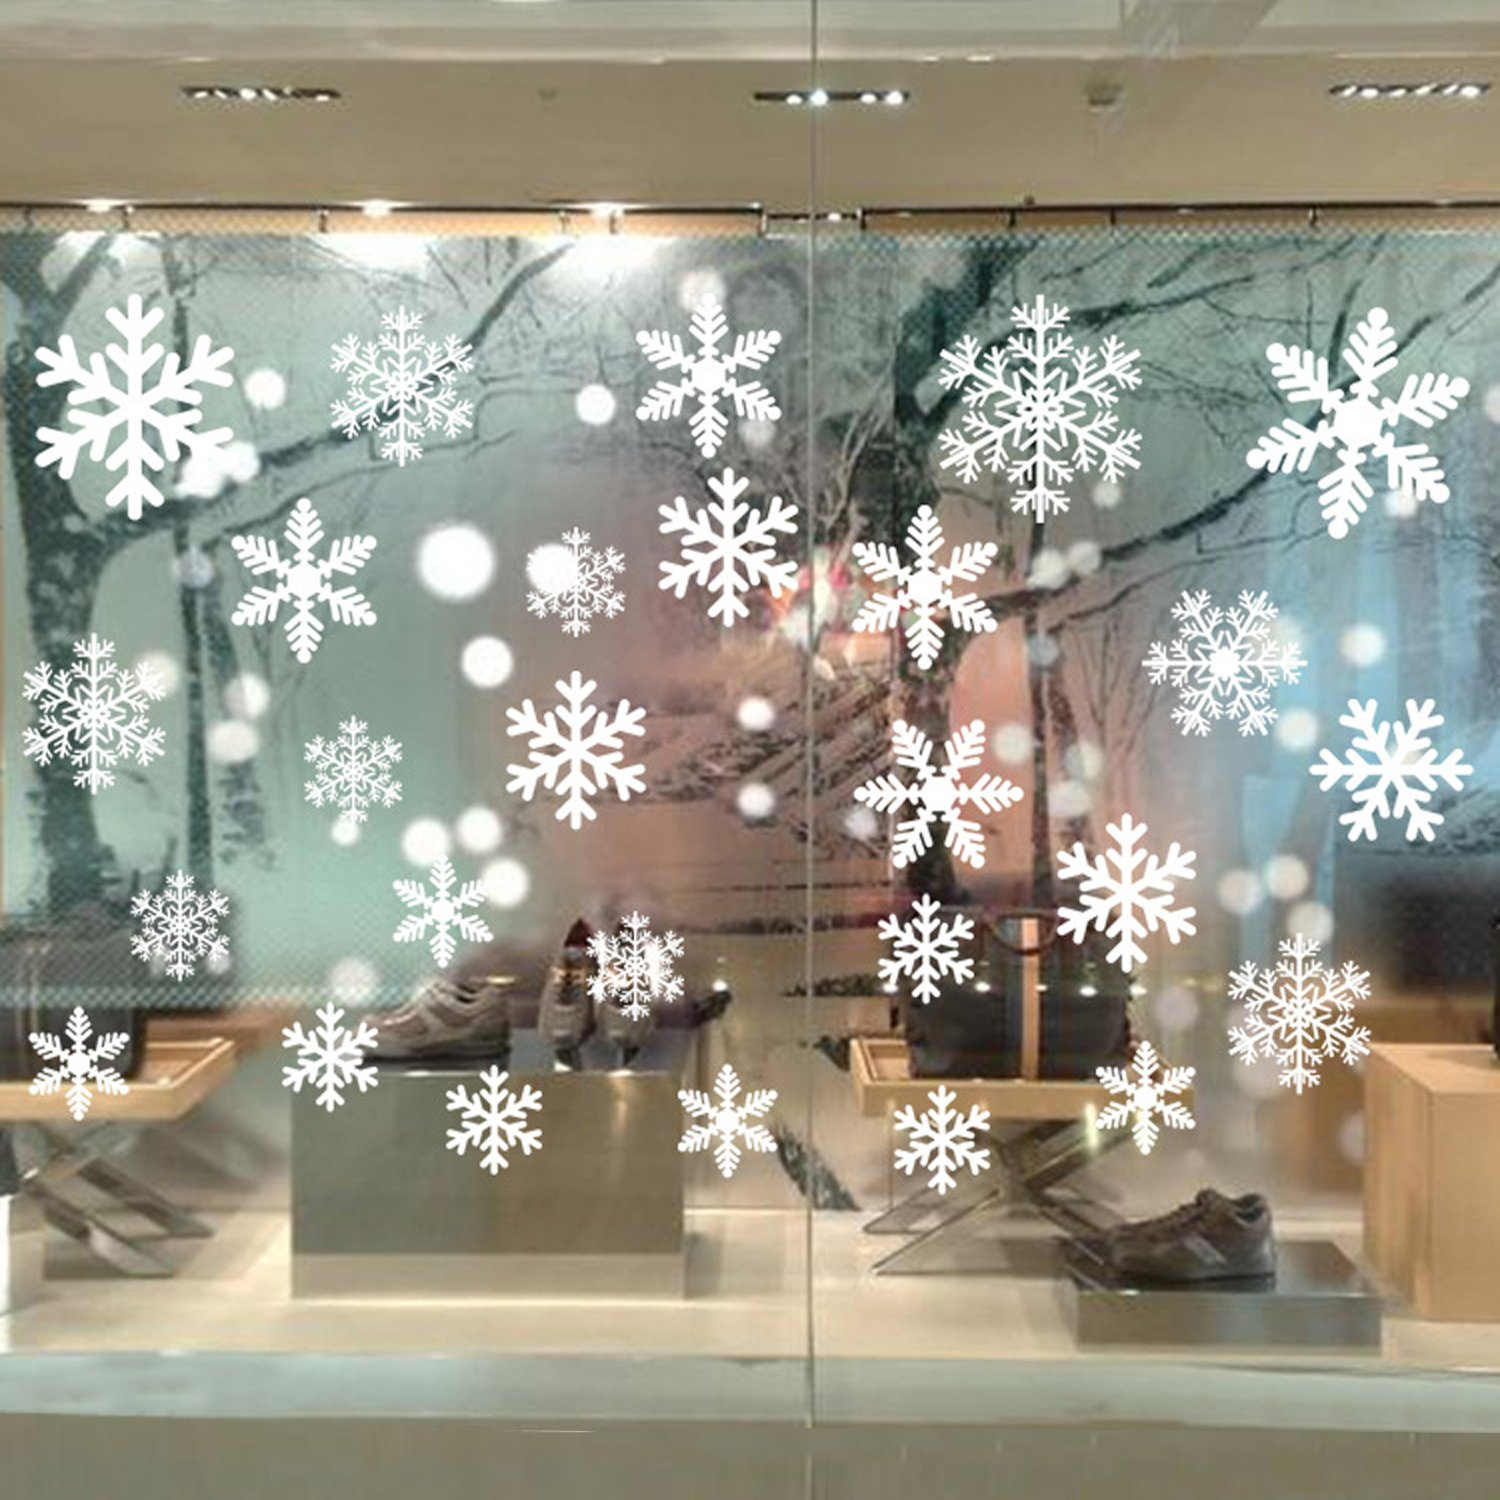 Bilipala Snowflakes Window Clings, Winter Stickers, Snowflake Decorations of Window Decals